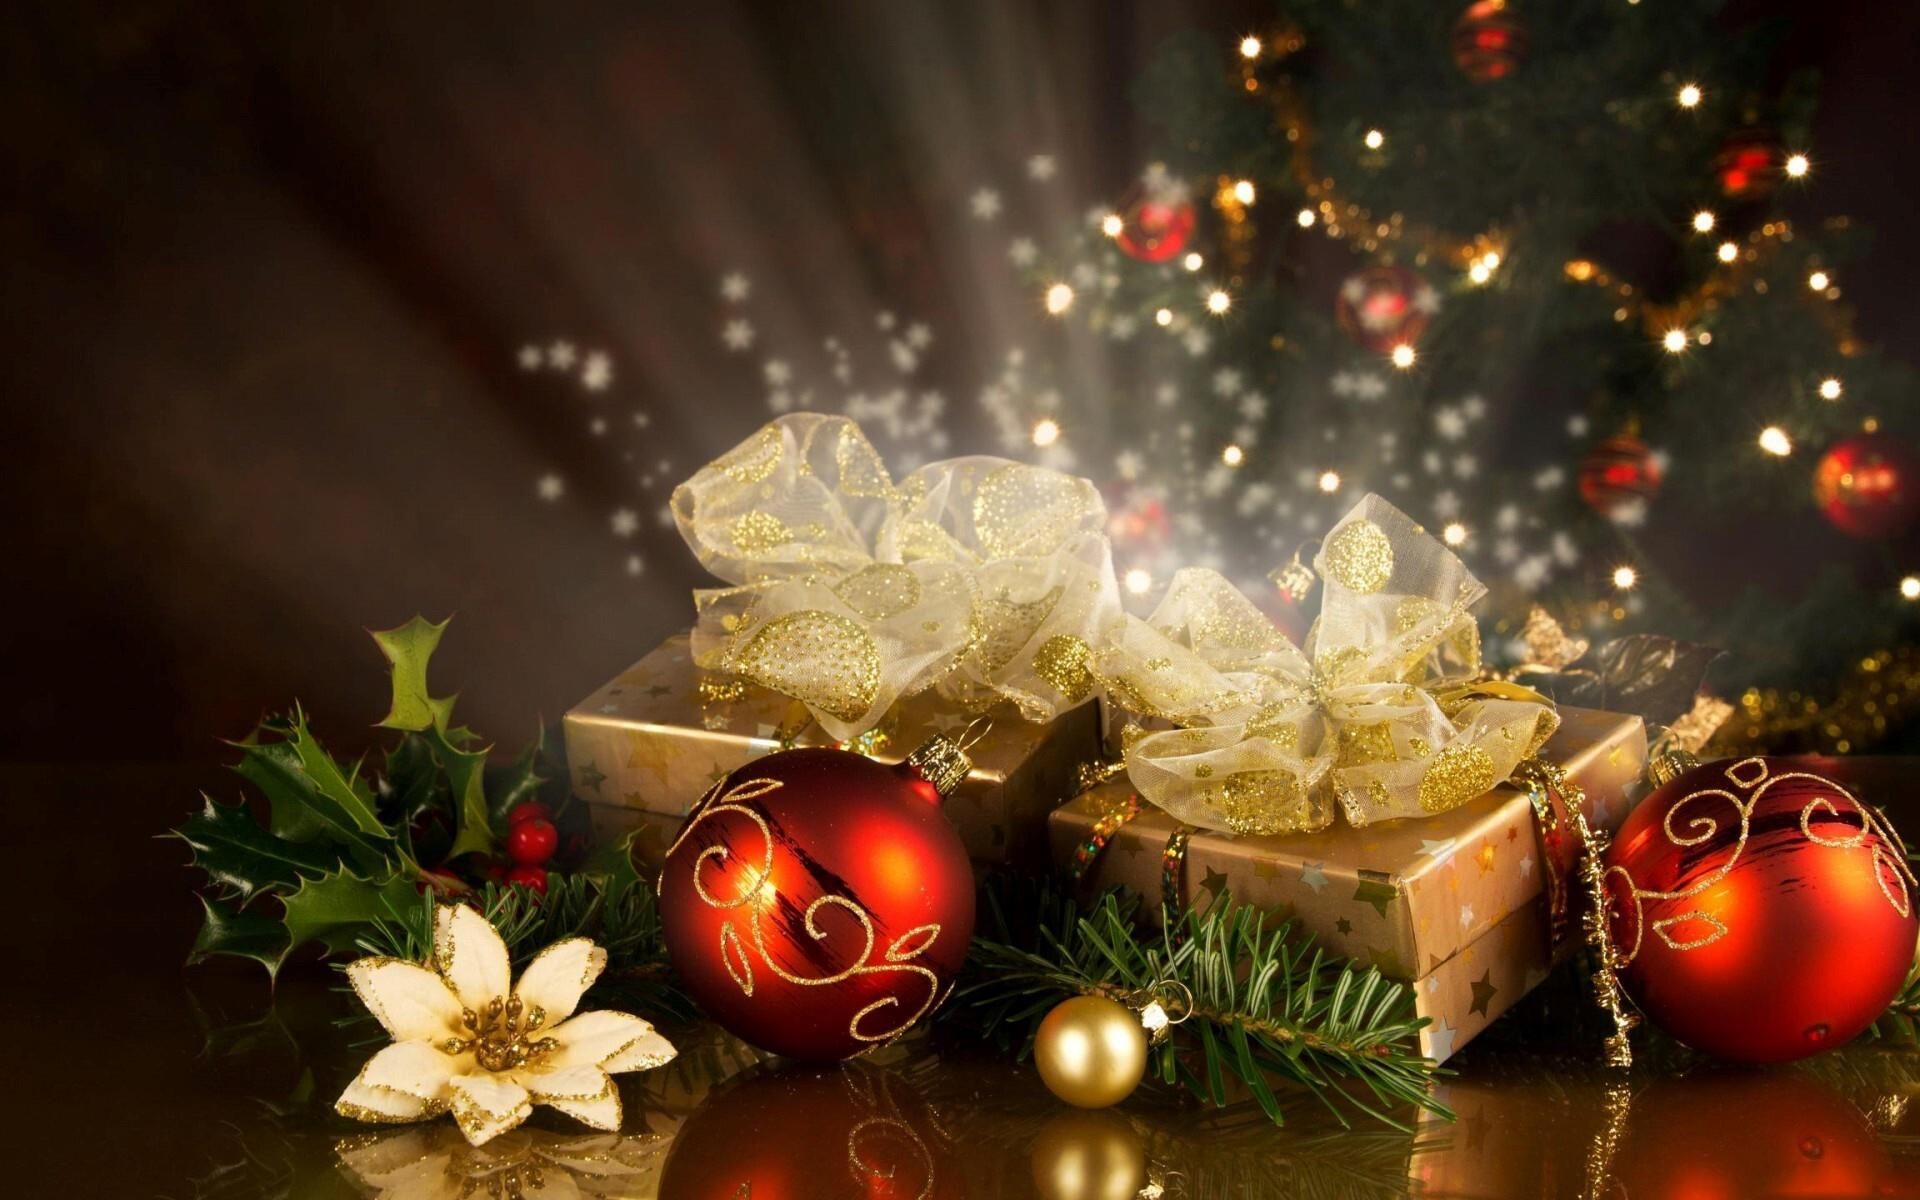 1920x1200 Christmas Gifts and Decoration Balls on 2013 Festival HD Wallpapers